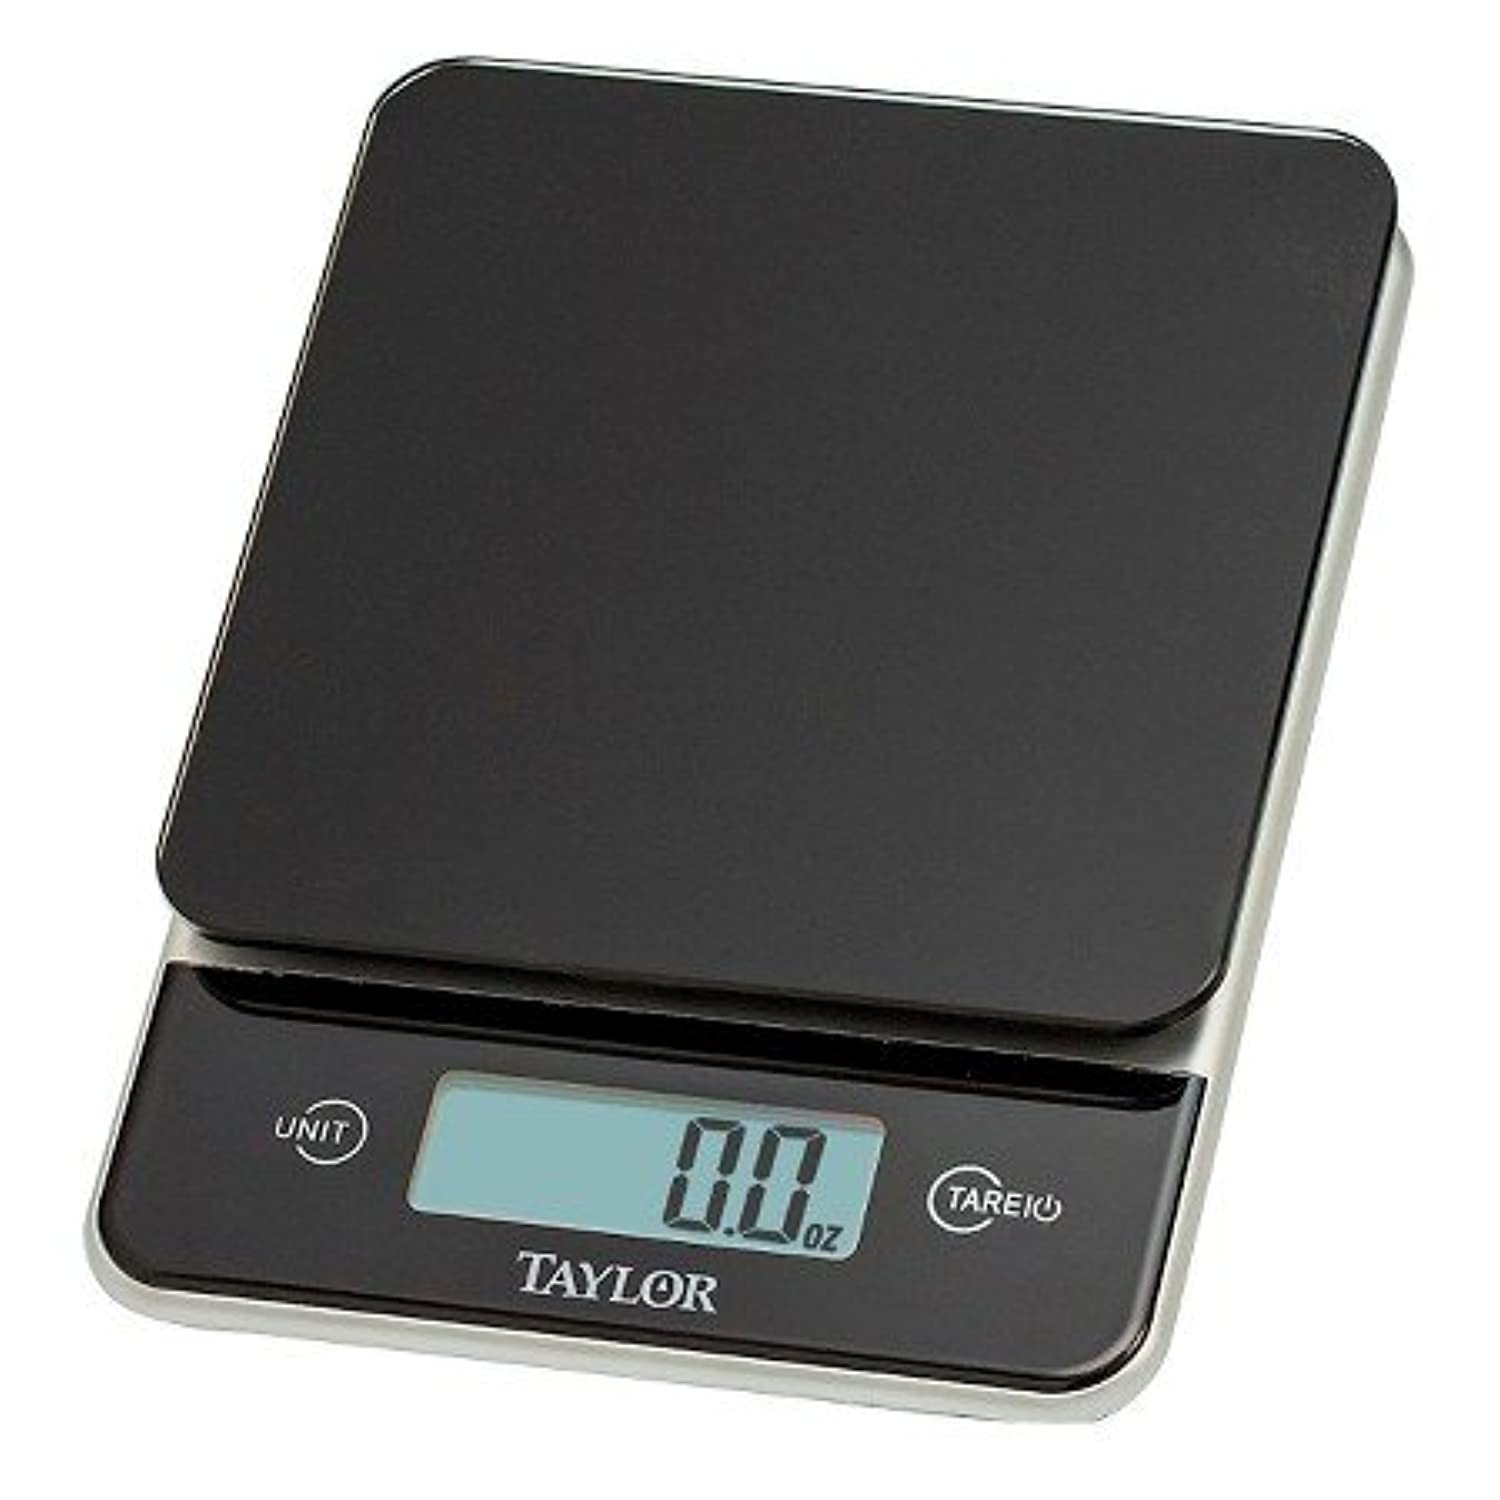 Taylor Digital 11lb Glass Top Food Scale - Black ...